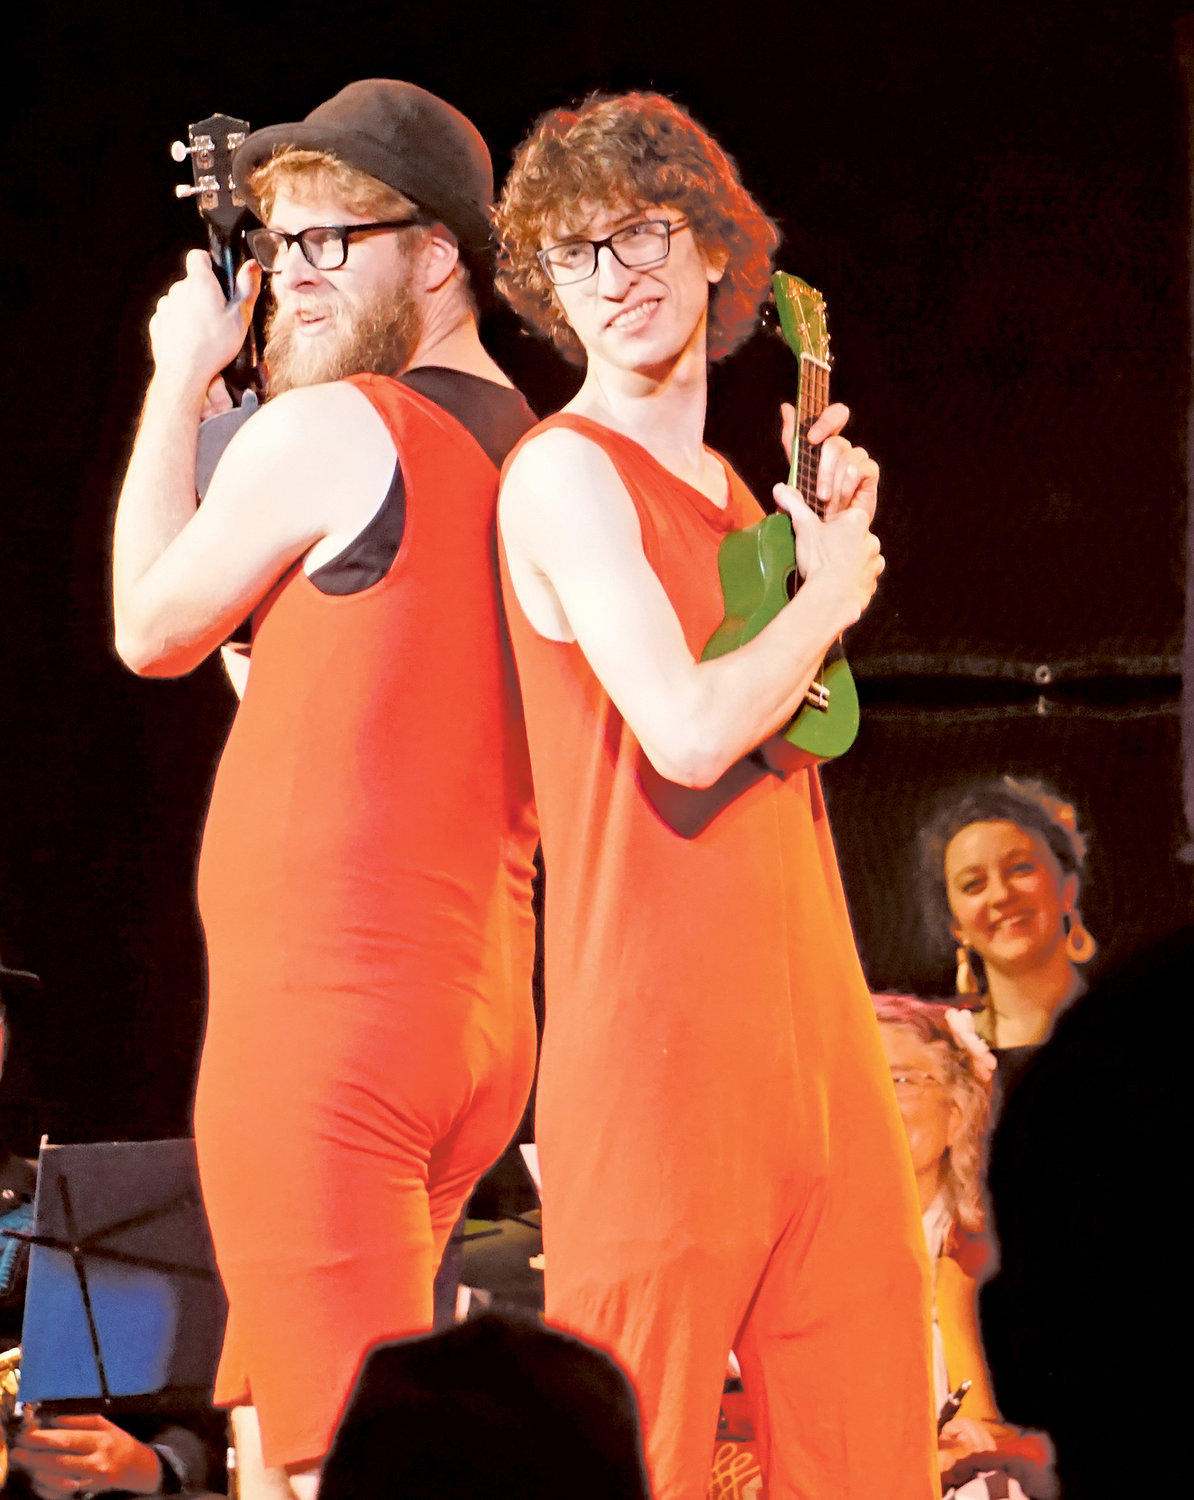 The juggling and musical duo, Strangely Jeremiah, perform with their ukuleles.